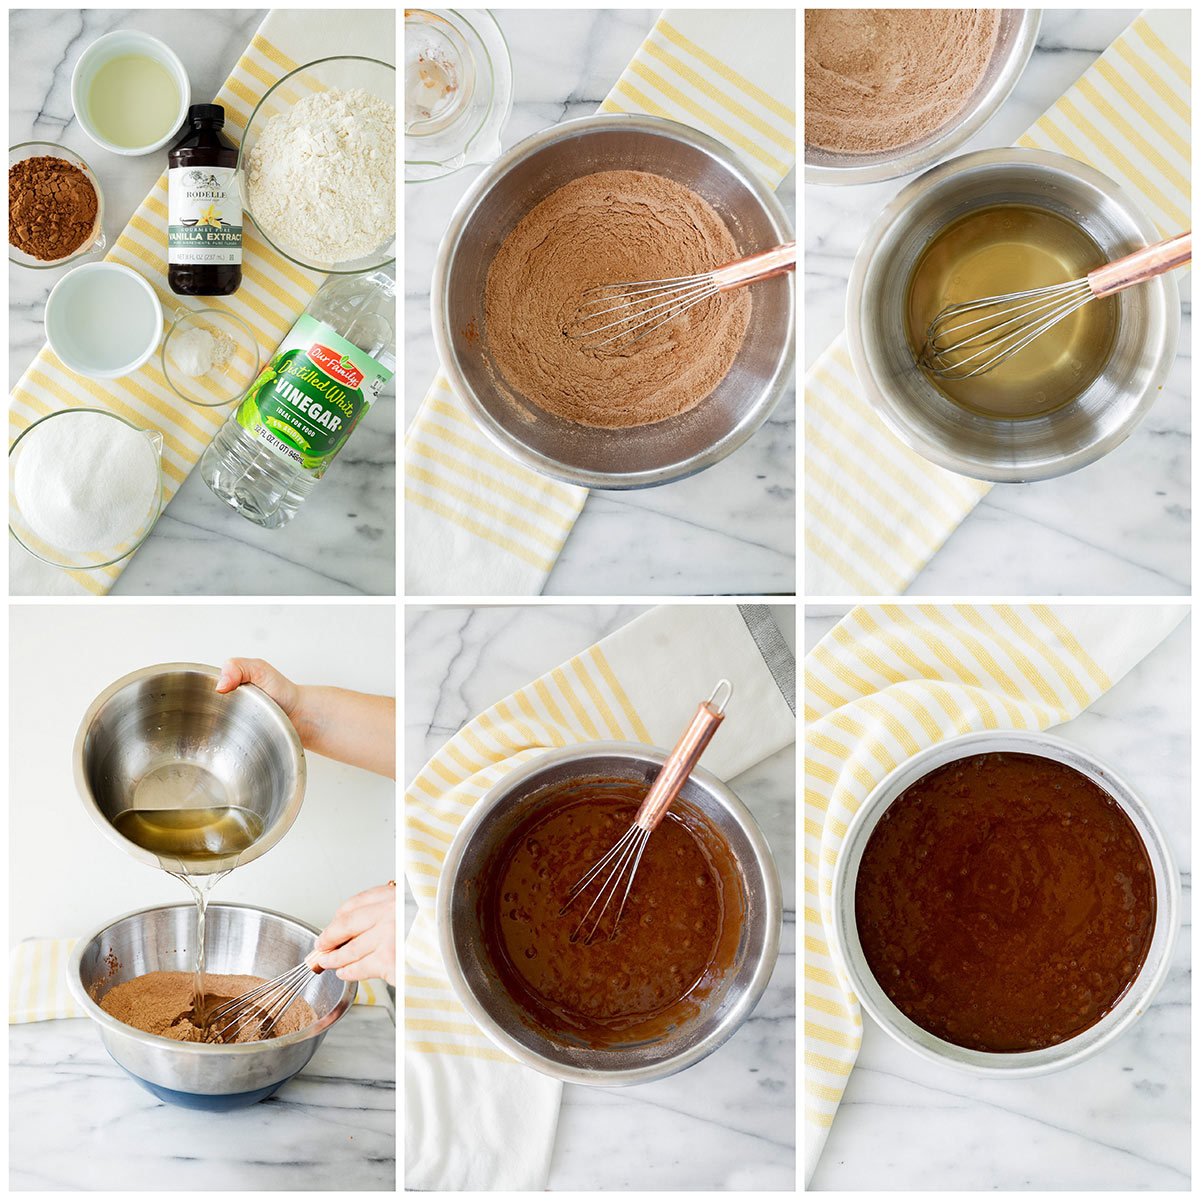 6 step by step photos of making the chocolate cake batter